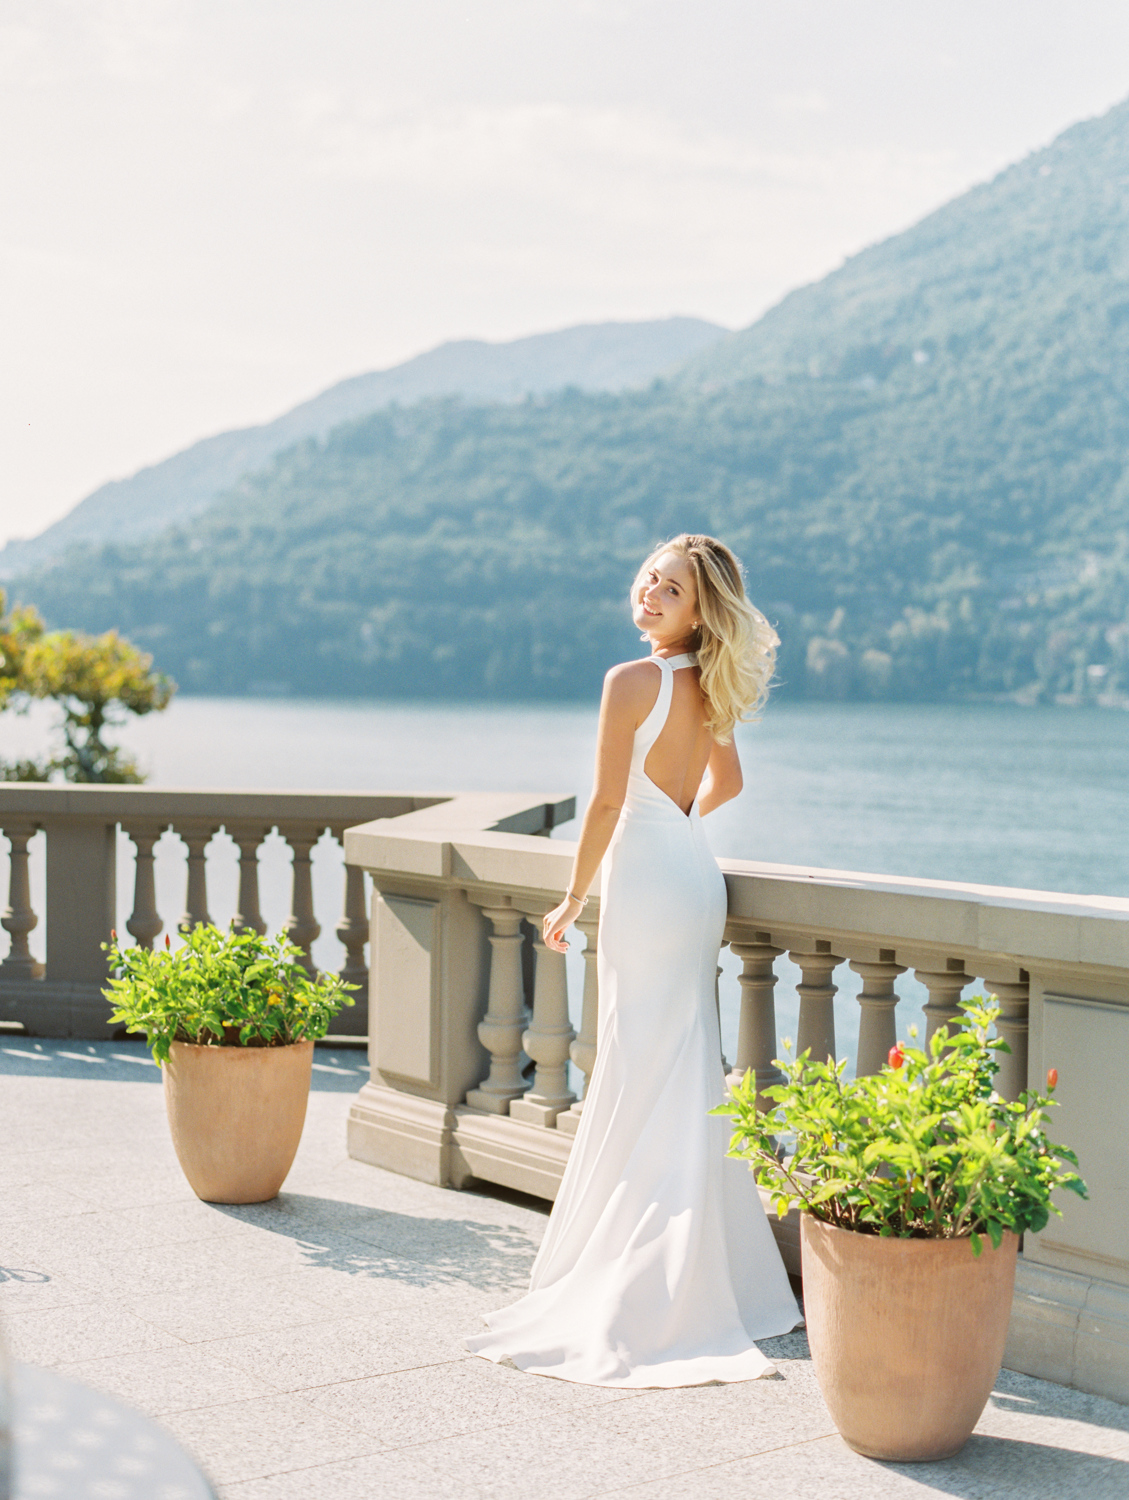 Romantic bride in villa Castadiva on lake